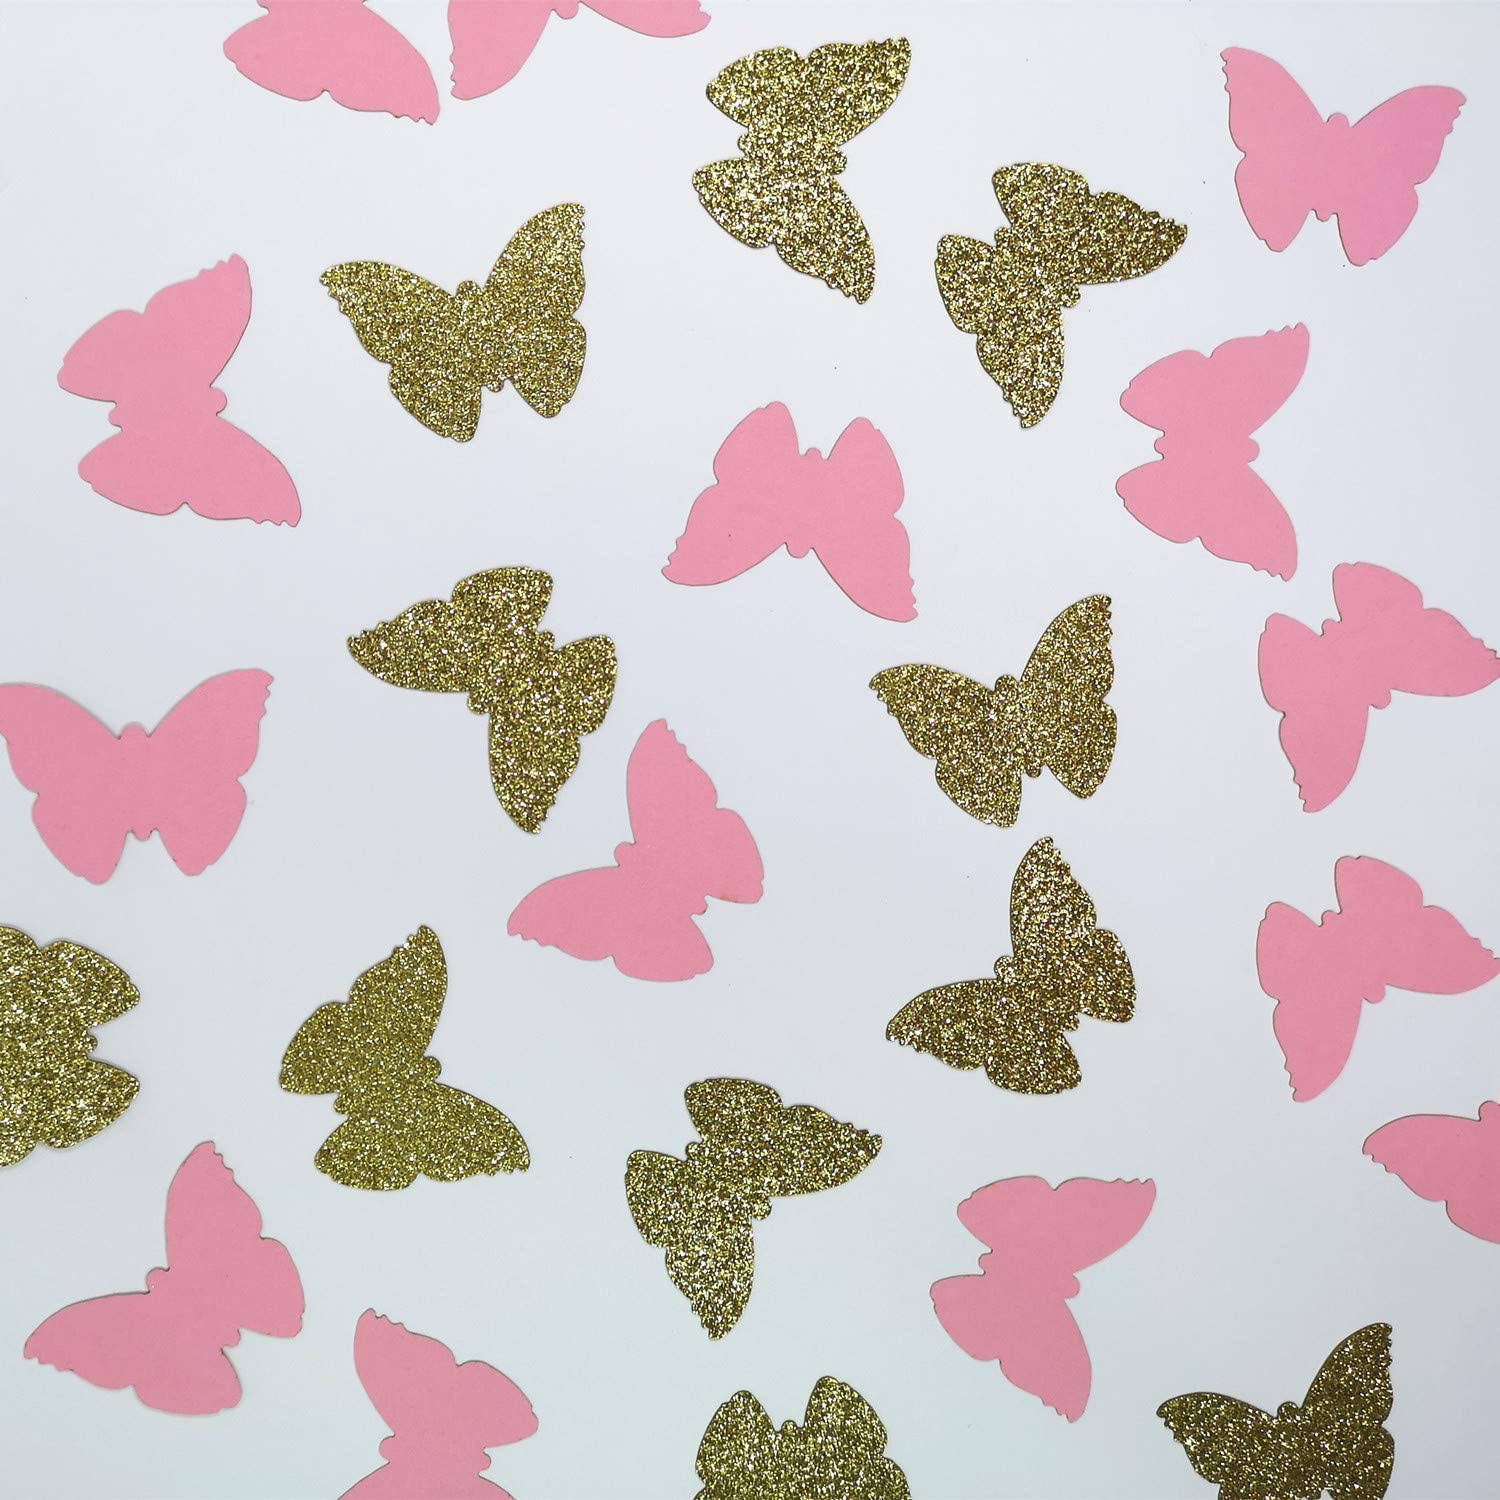 Butterfly Table Top CONFETTIWeddingBirthday PartyTable Decoration